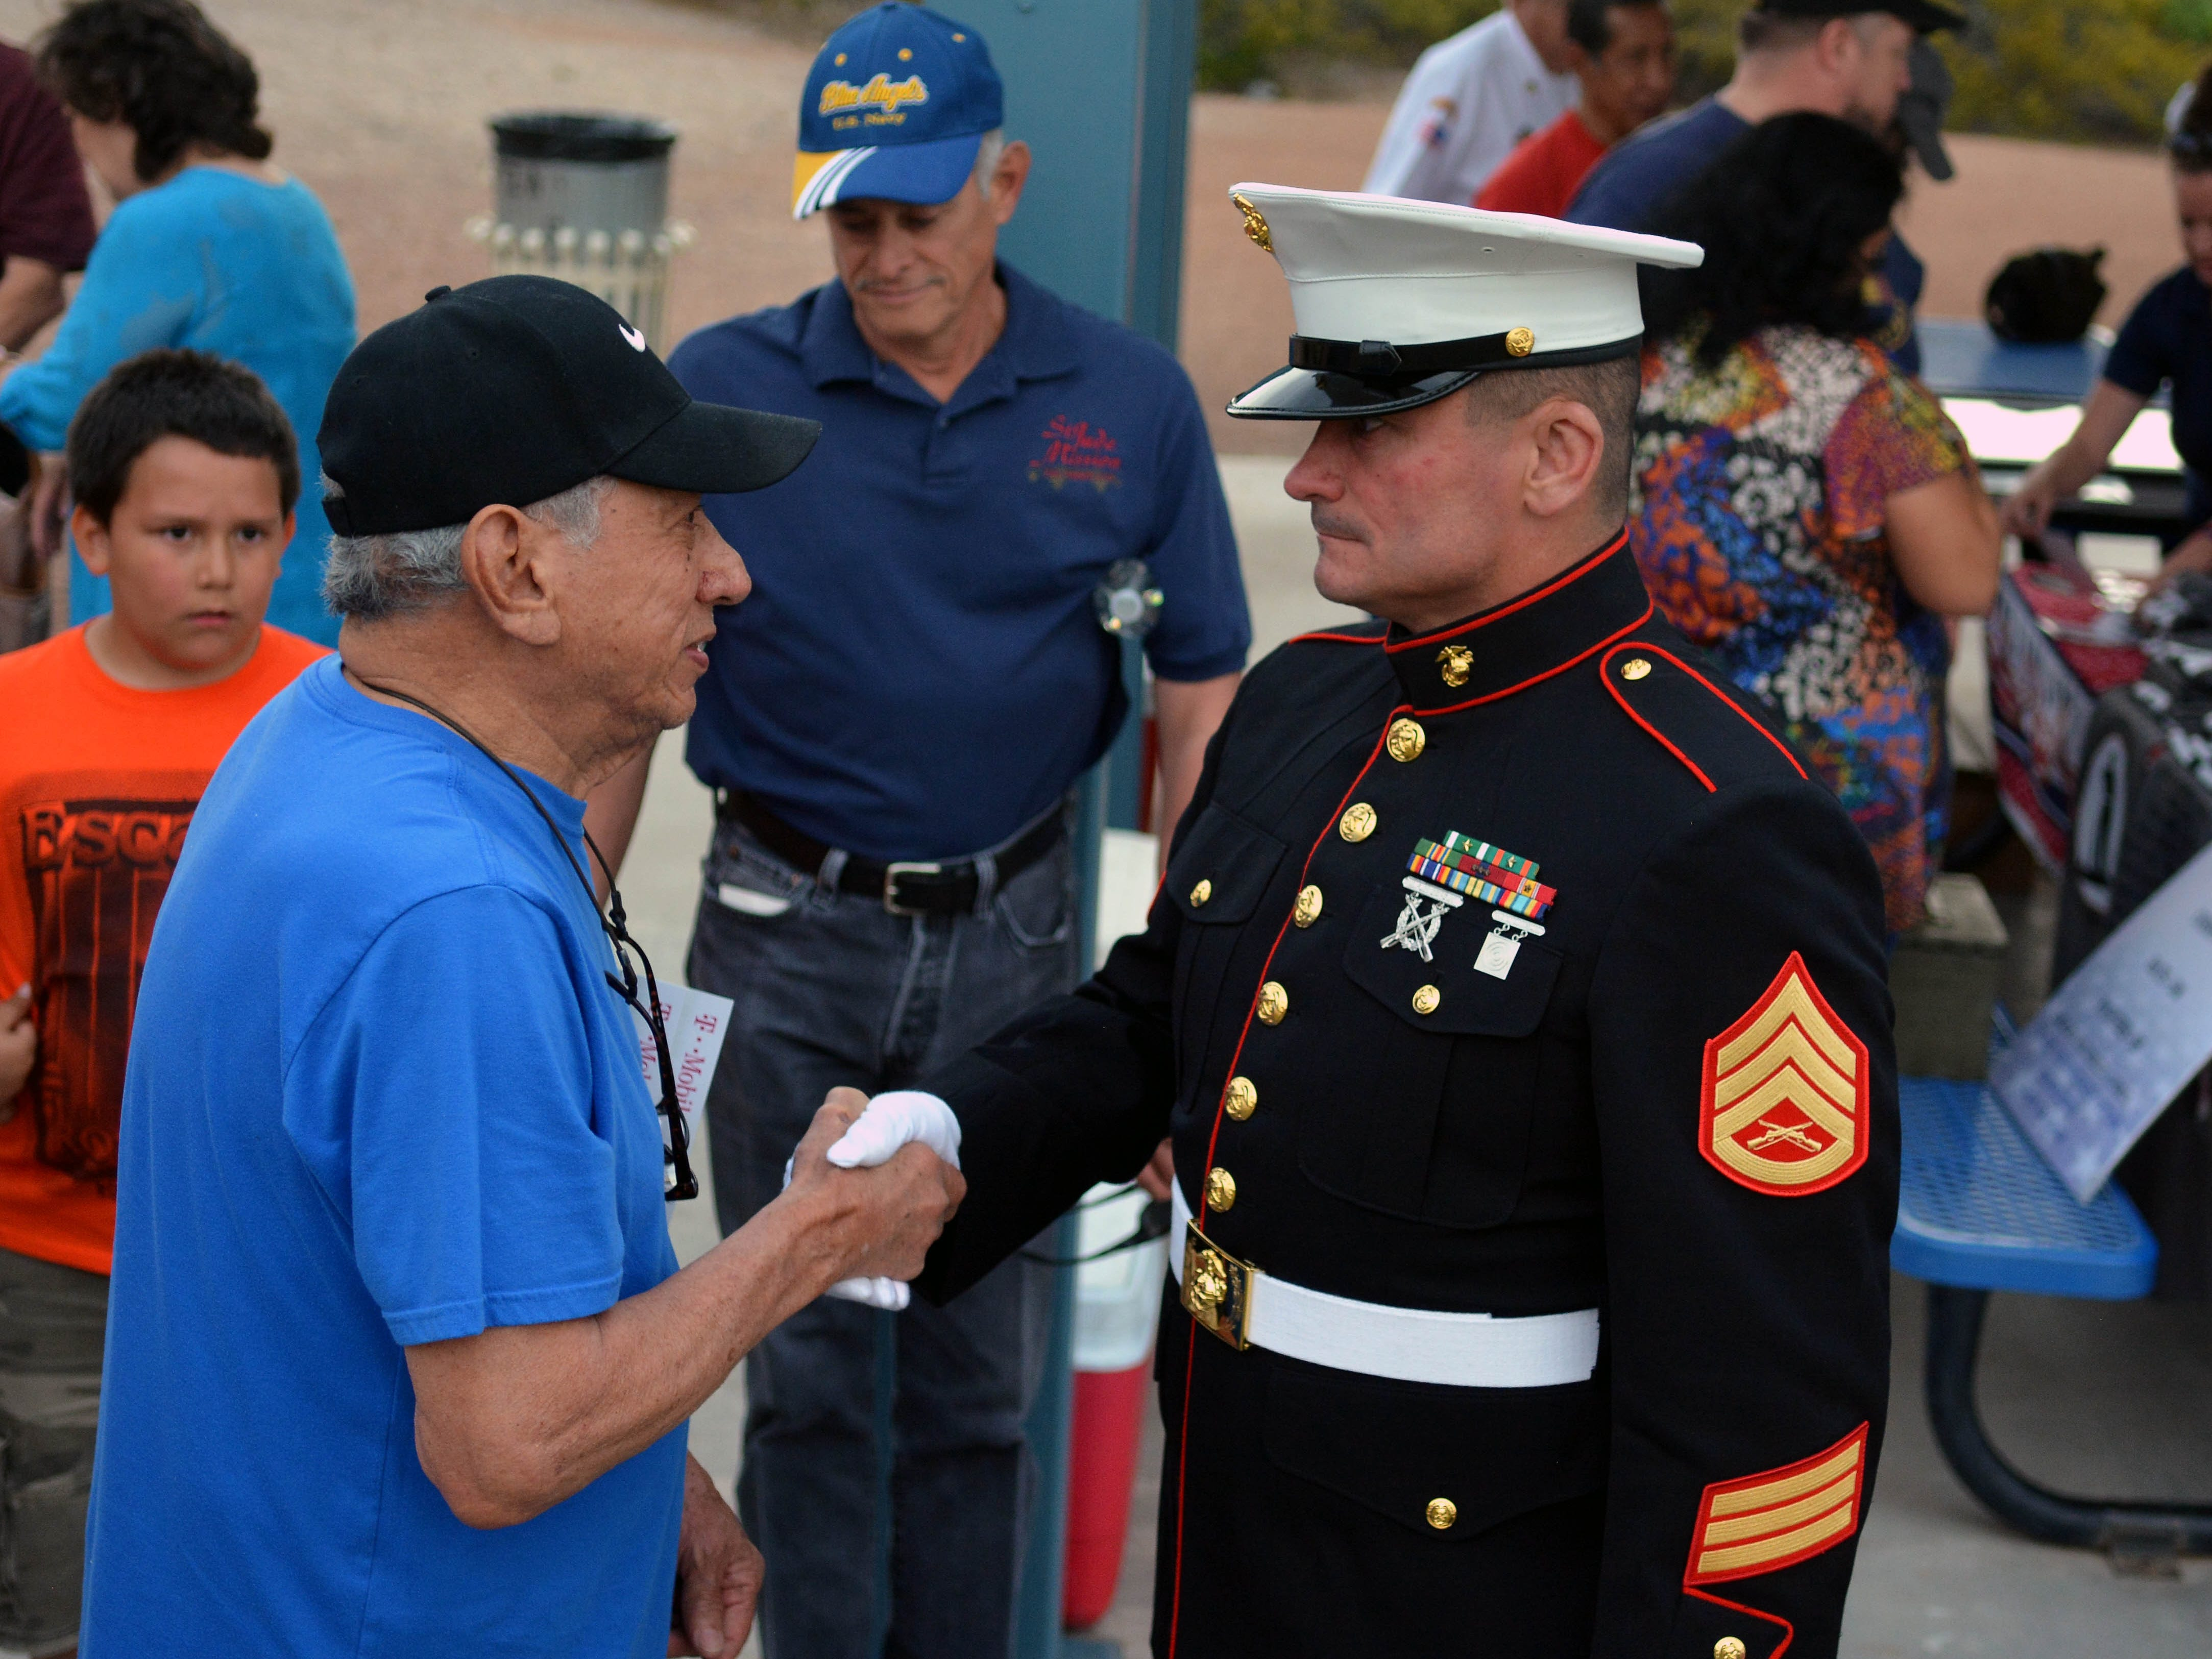 US Air Force veteran Roman Bernal, left, takes time to meet Tim Chambers, known as The Saluting Marine, on Thursday, May 2, 2019, at Veterans Memorial Park in Las Cruces.